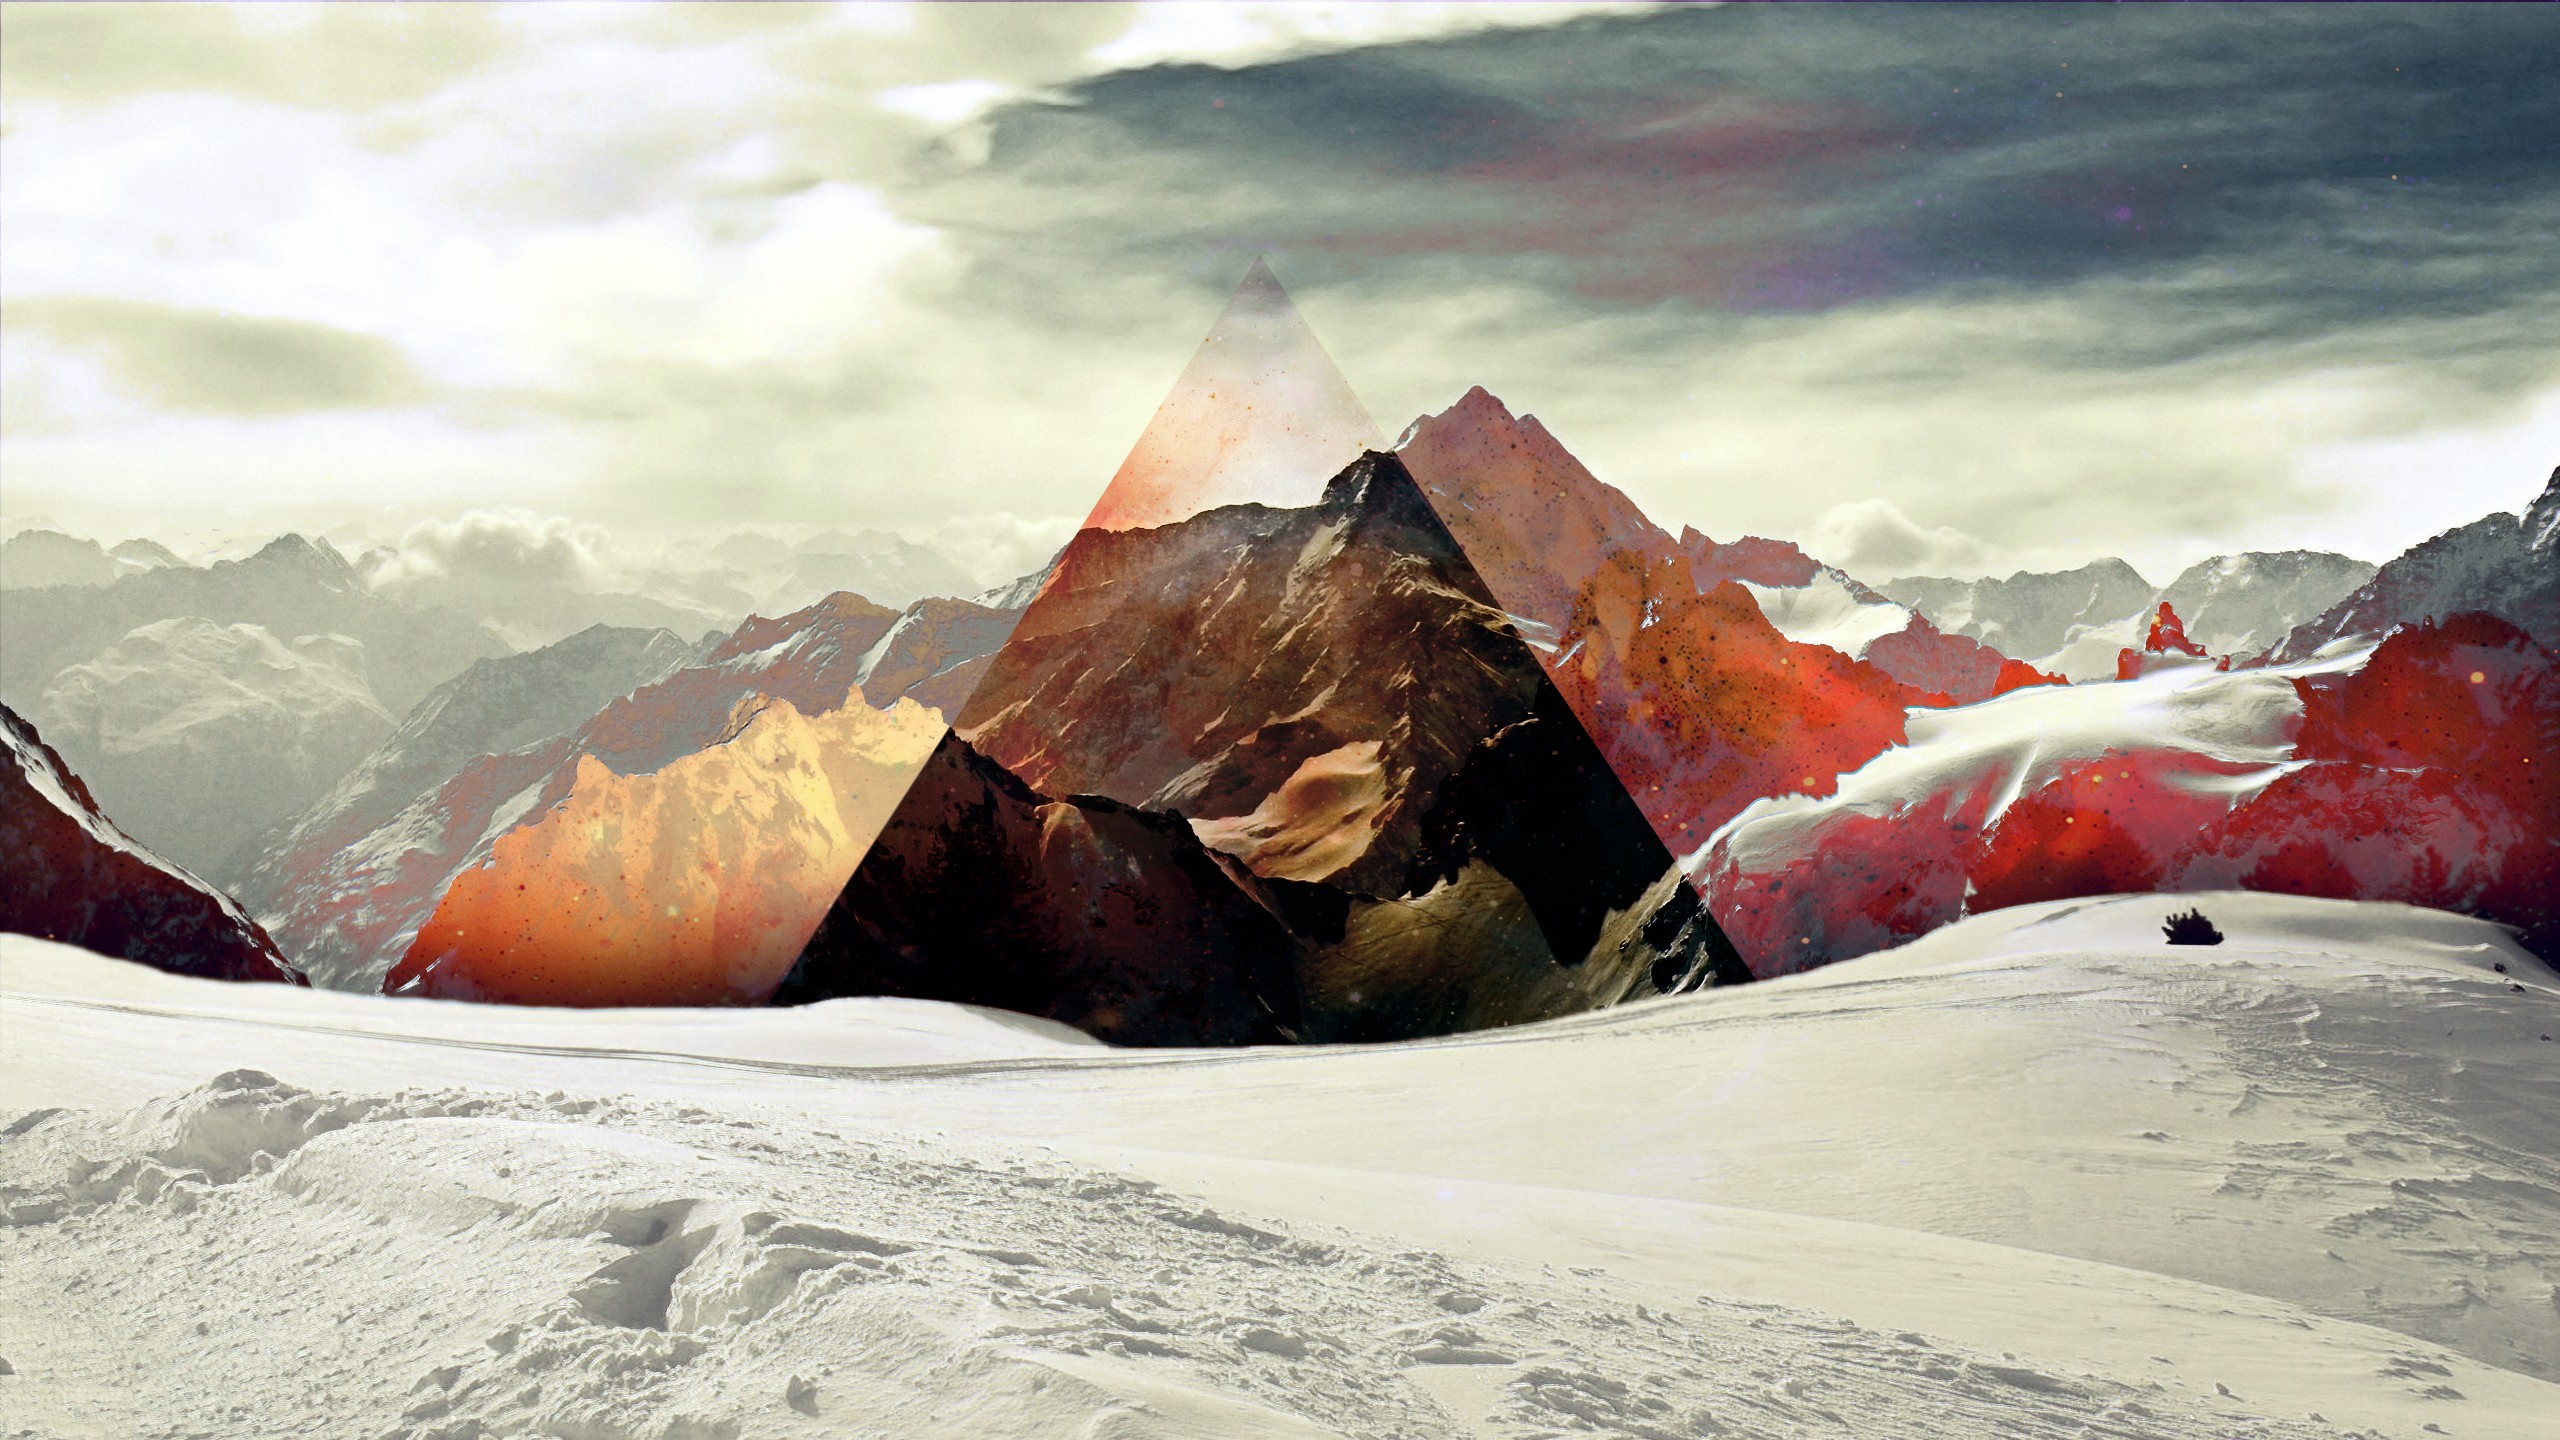 Triangle Snow Abstract mountains sky wallpaper     50472    WallpaperUP